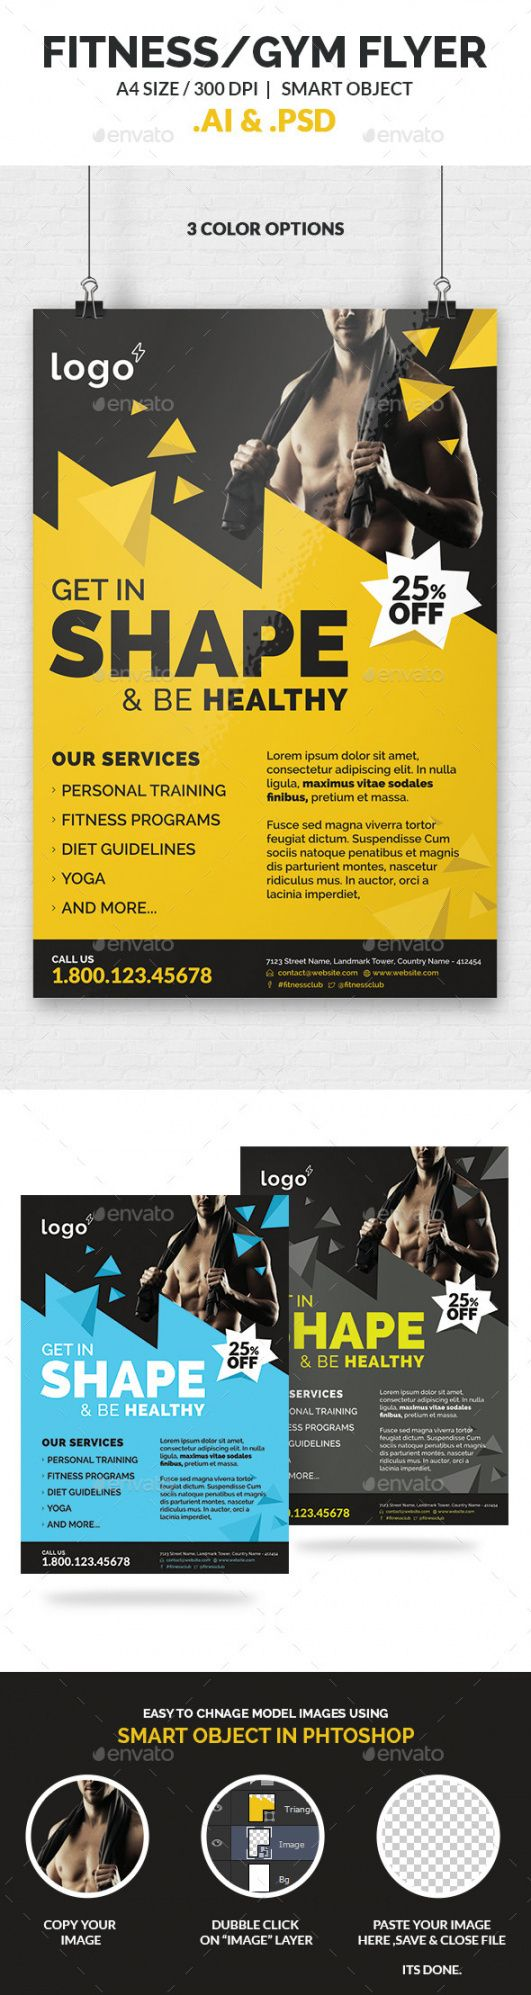 free gym graphics designs & templates from graphicriver gym open house flyer template and sample